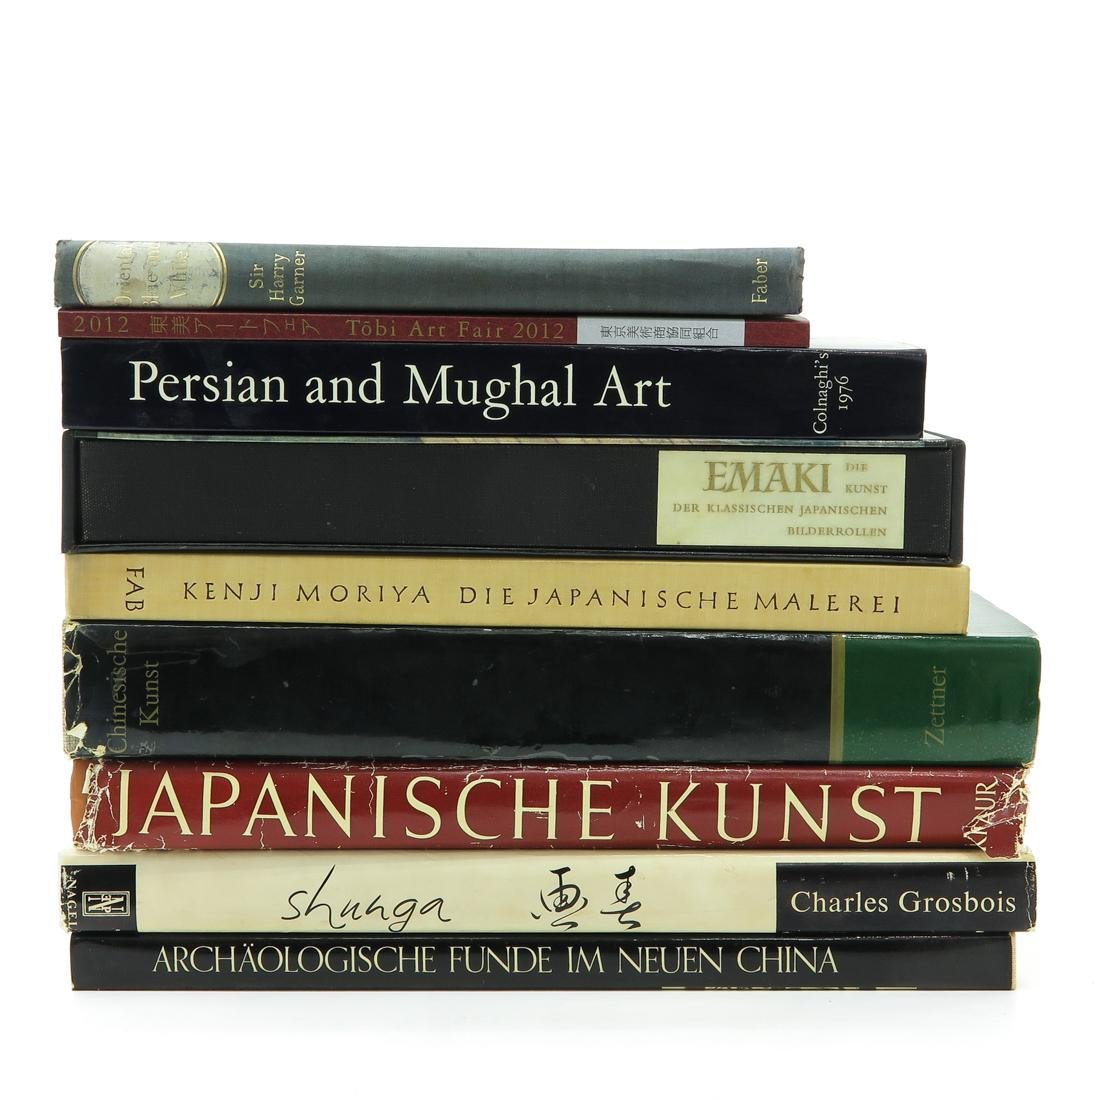 Lot of 9 Diverse Asian Subject Books